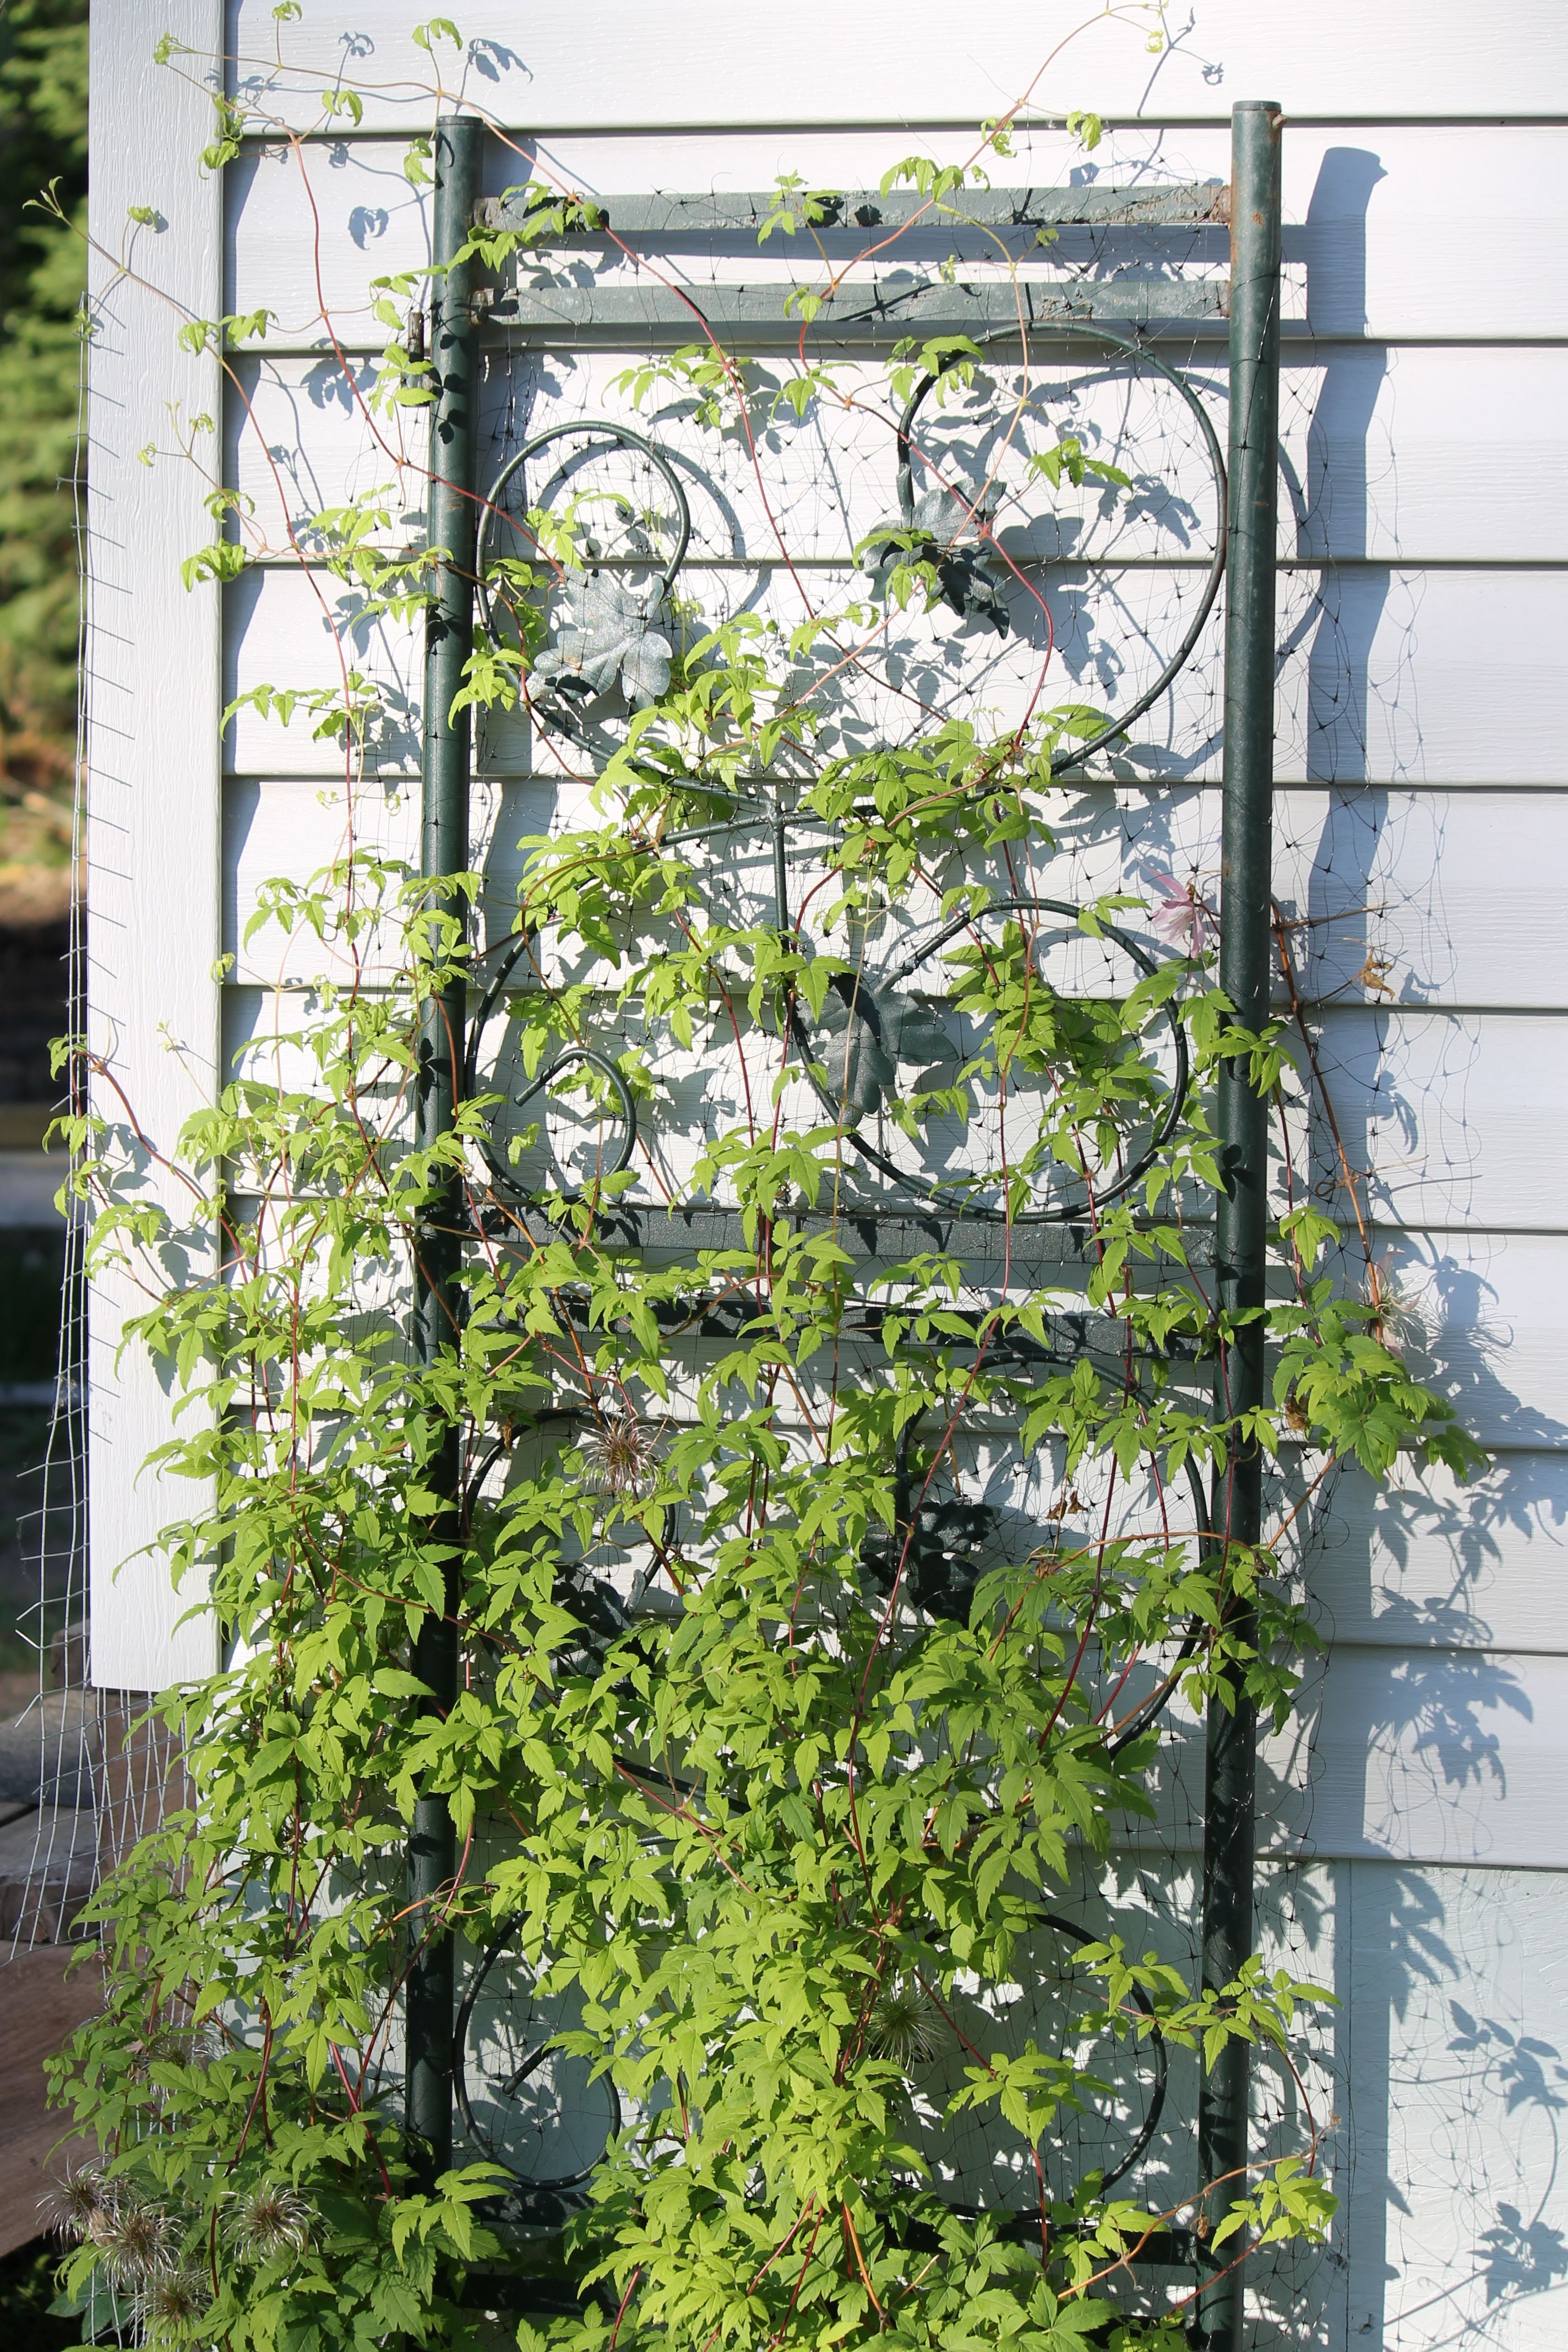 Climbing vines for walls - Use Old Recycled Gazebo Walls For Climbing Vines And Roses After A Few